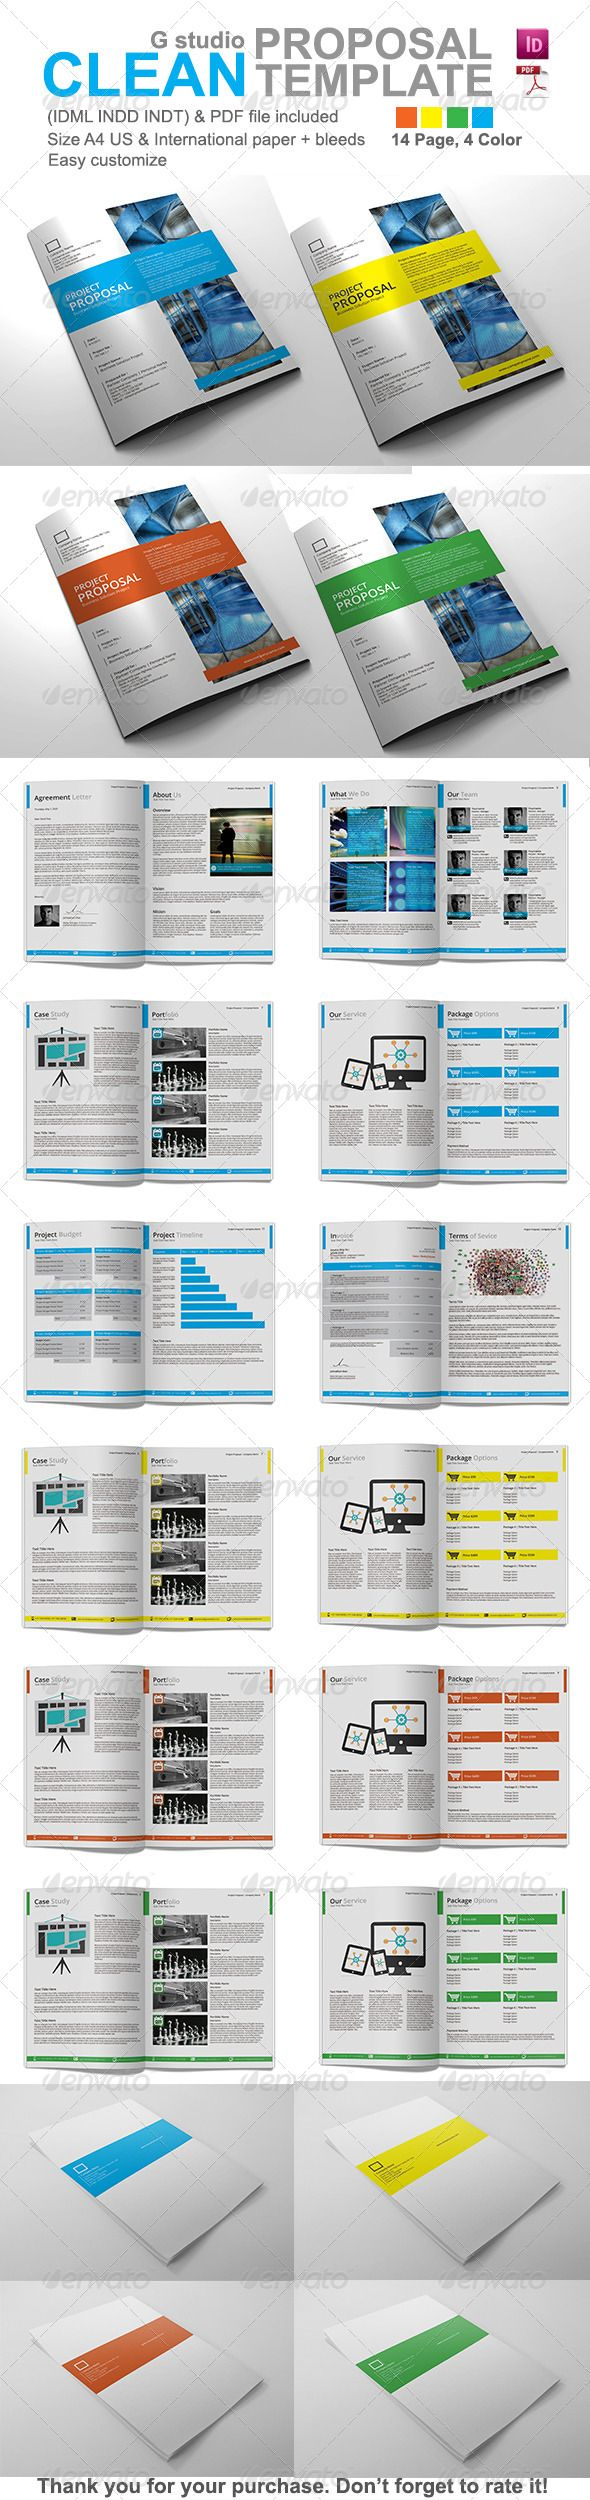 Commercial Proposal Format Captivating 504 Best Business Proposal Images On Pinterest  Proposal Templates .